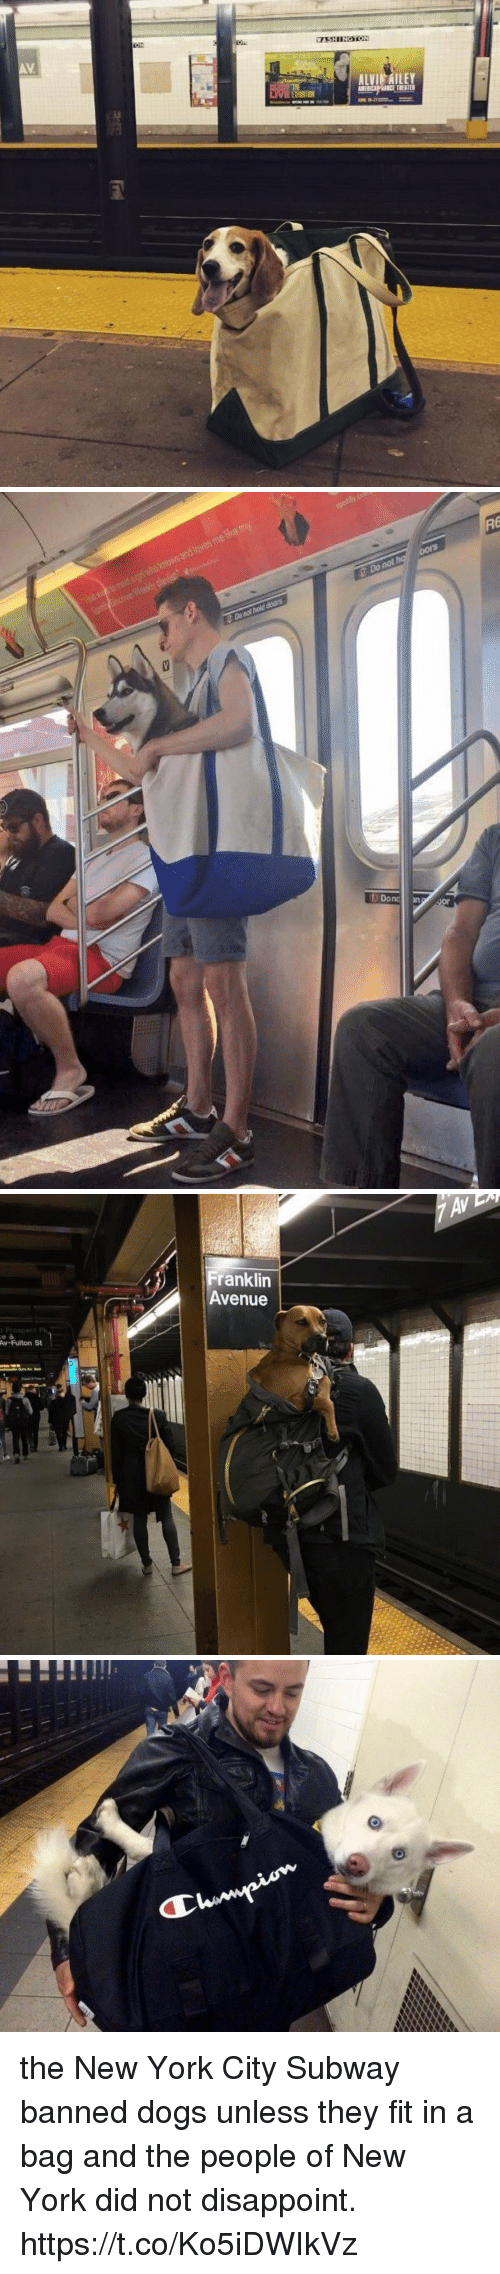 Dogs, New York, and Subway: AV  ALVI AILEY   Franklin  Avenue  Av-Fulton St the New York City Subway banned dogs unless they fit in a bag and the people of New York did not disappoint. https://t.co/Ko5iDWIkVz